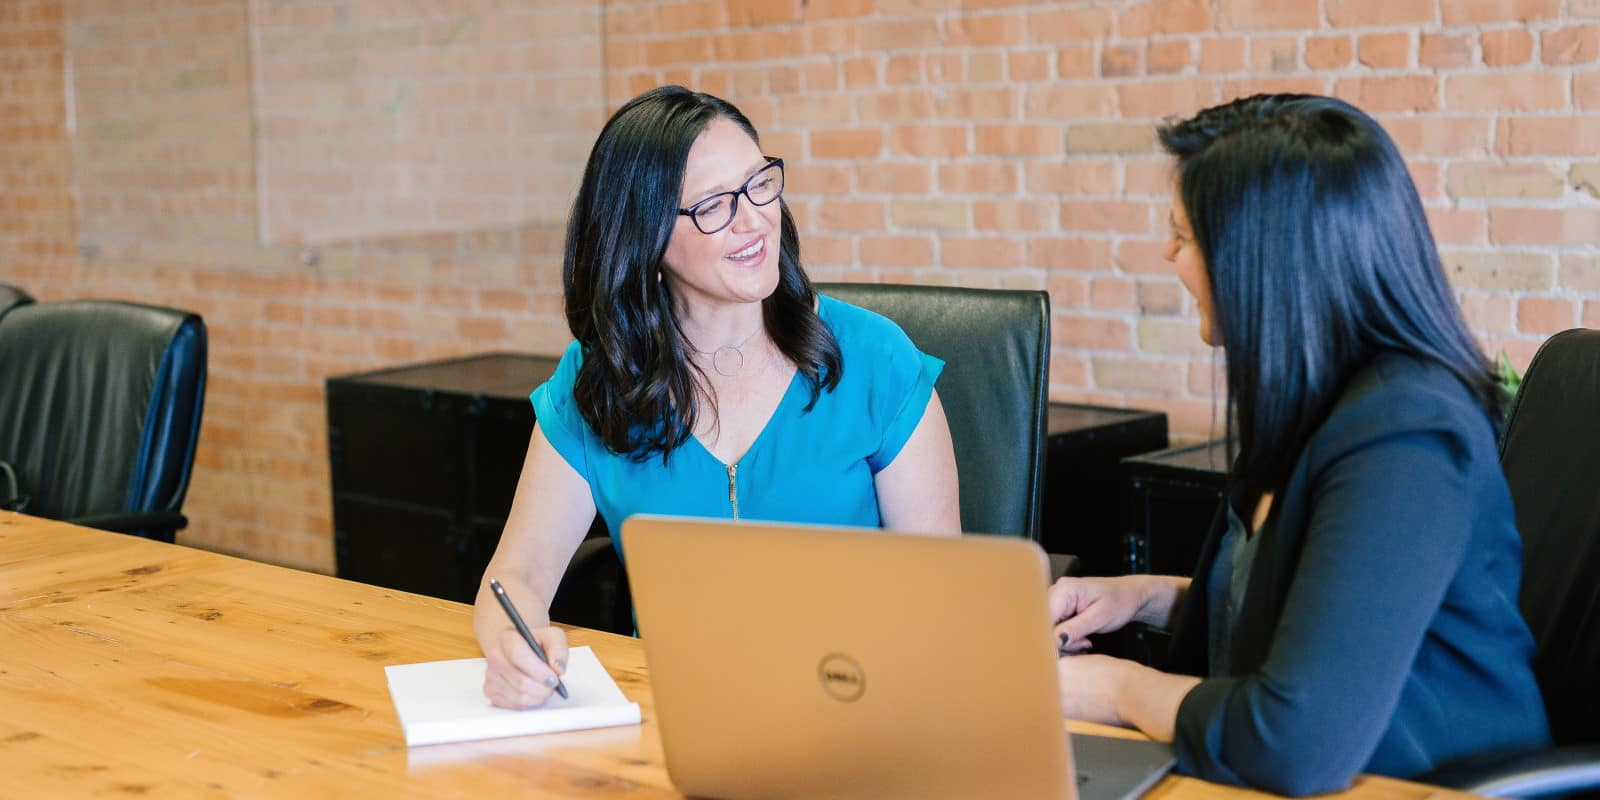 Professionally dressed female being interviewed for a role